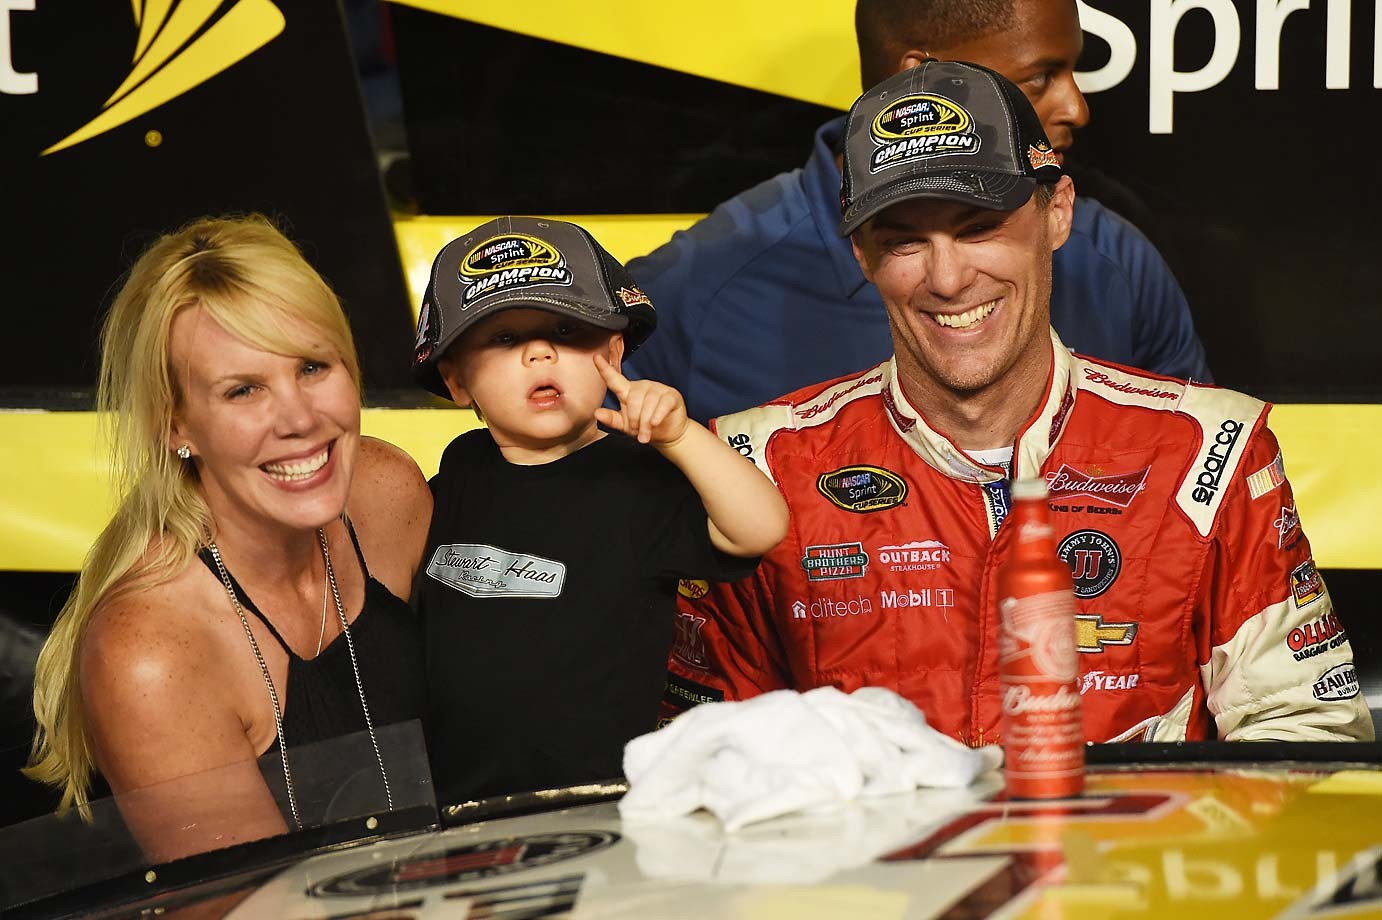 Kevin Harvick, wife DeLana and son Keelan in victory lane after Kevin won the 2014 NASCAR championship.